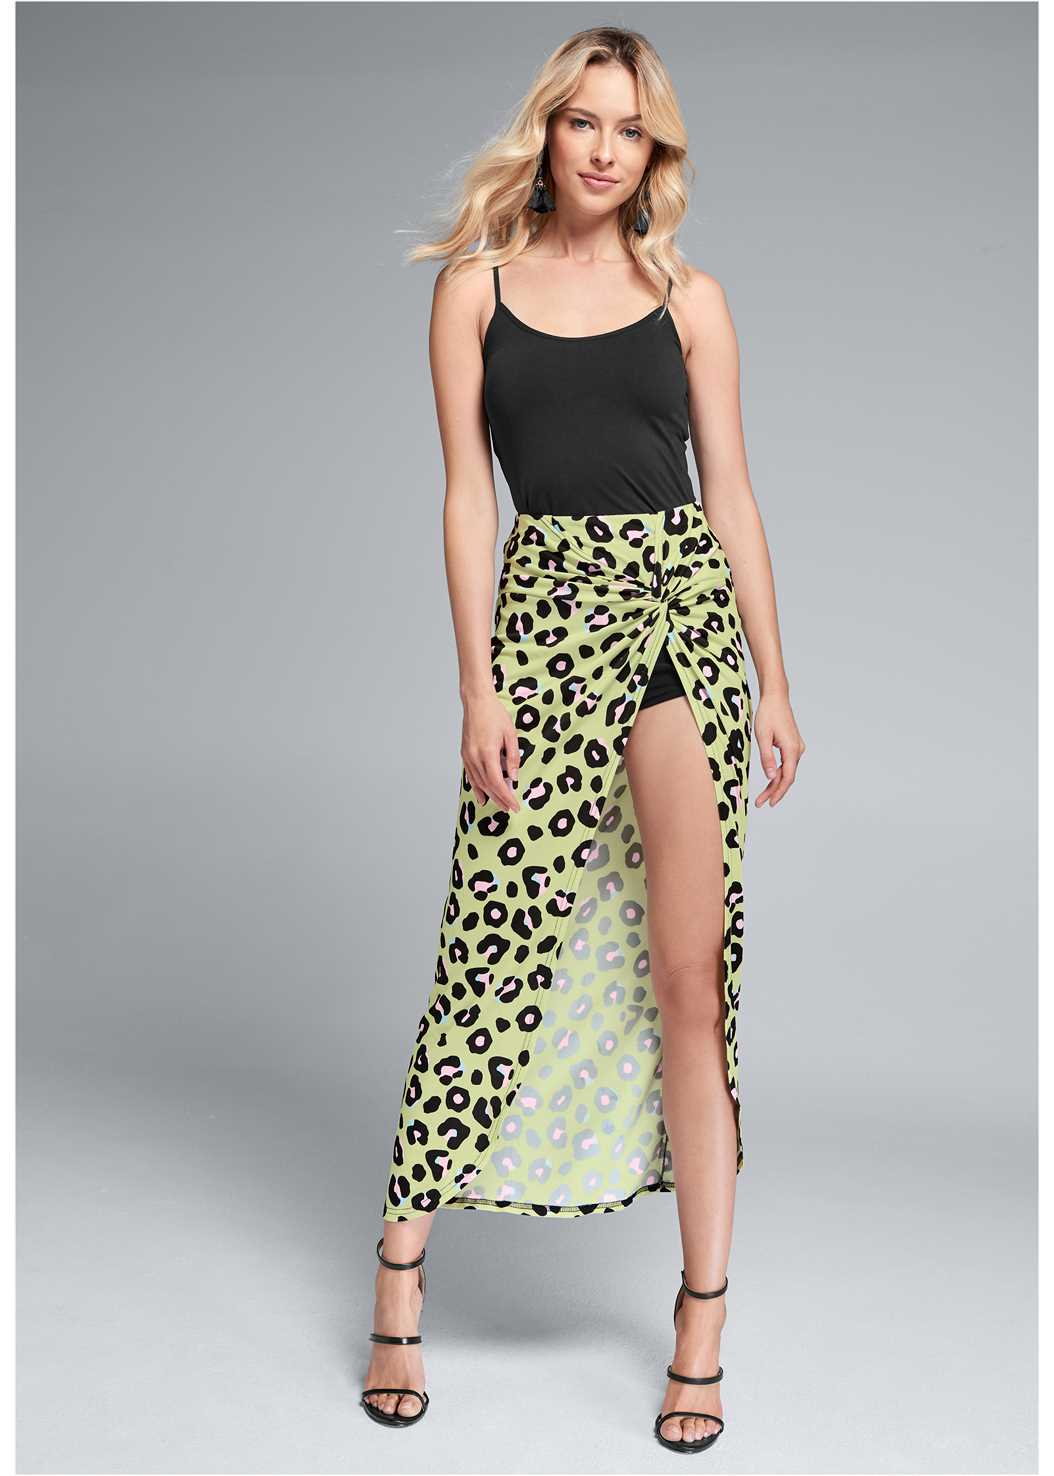 Leopard Print Skirt,Basic Cami Two Pack,High Heel Strappy Sandals,Bauble Fringe Earrings